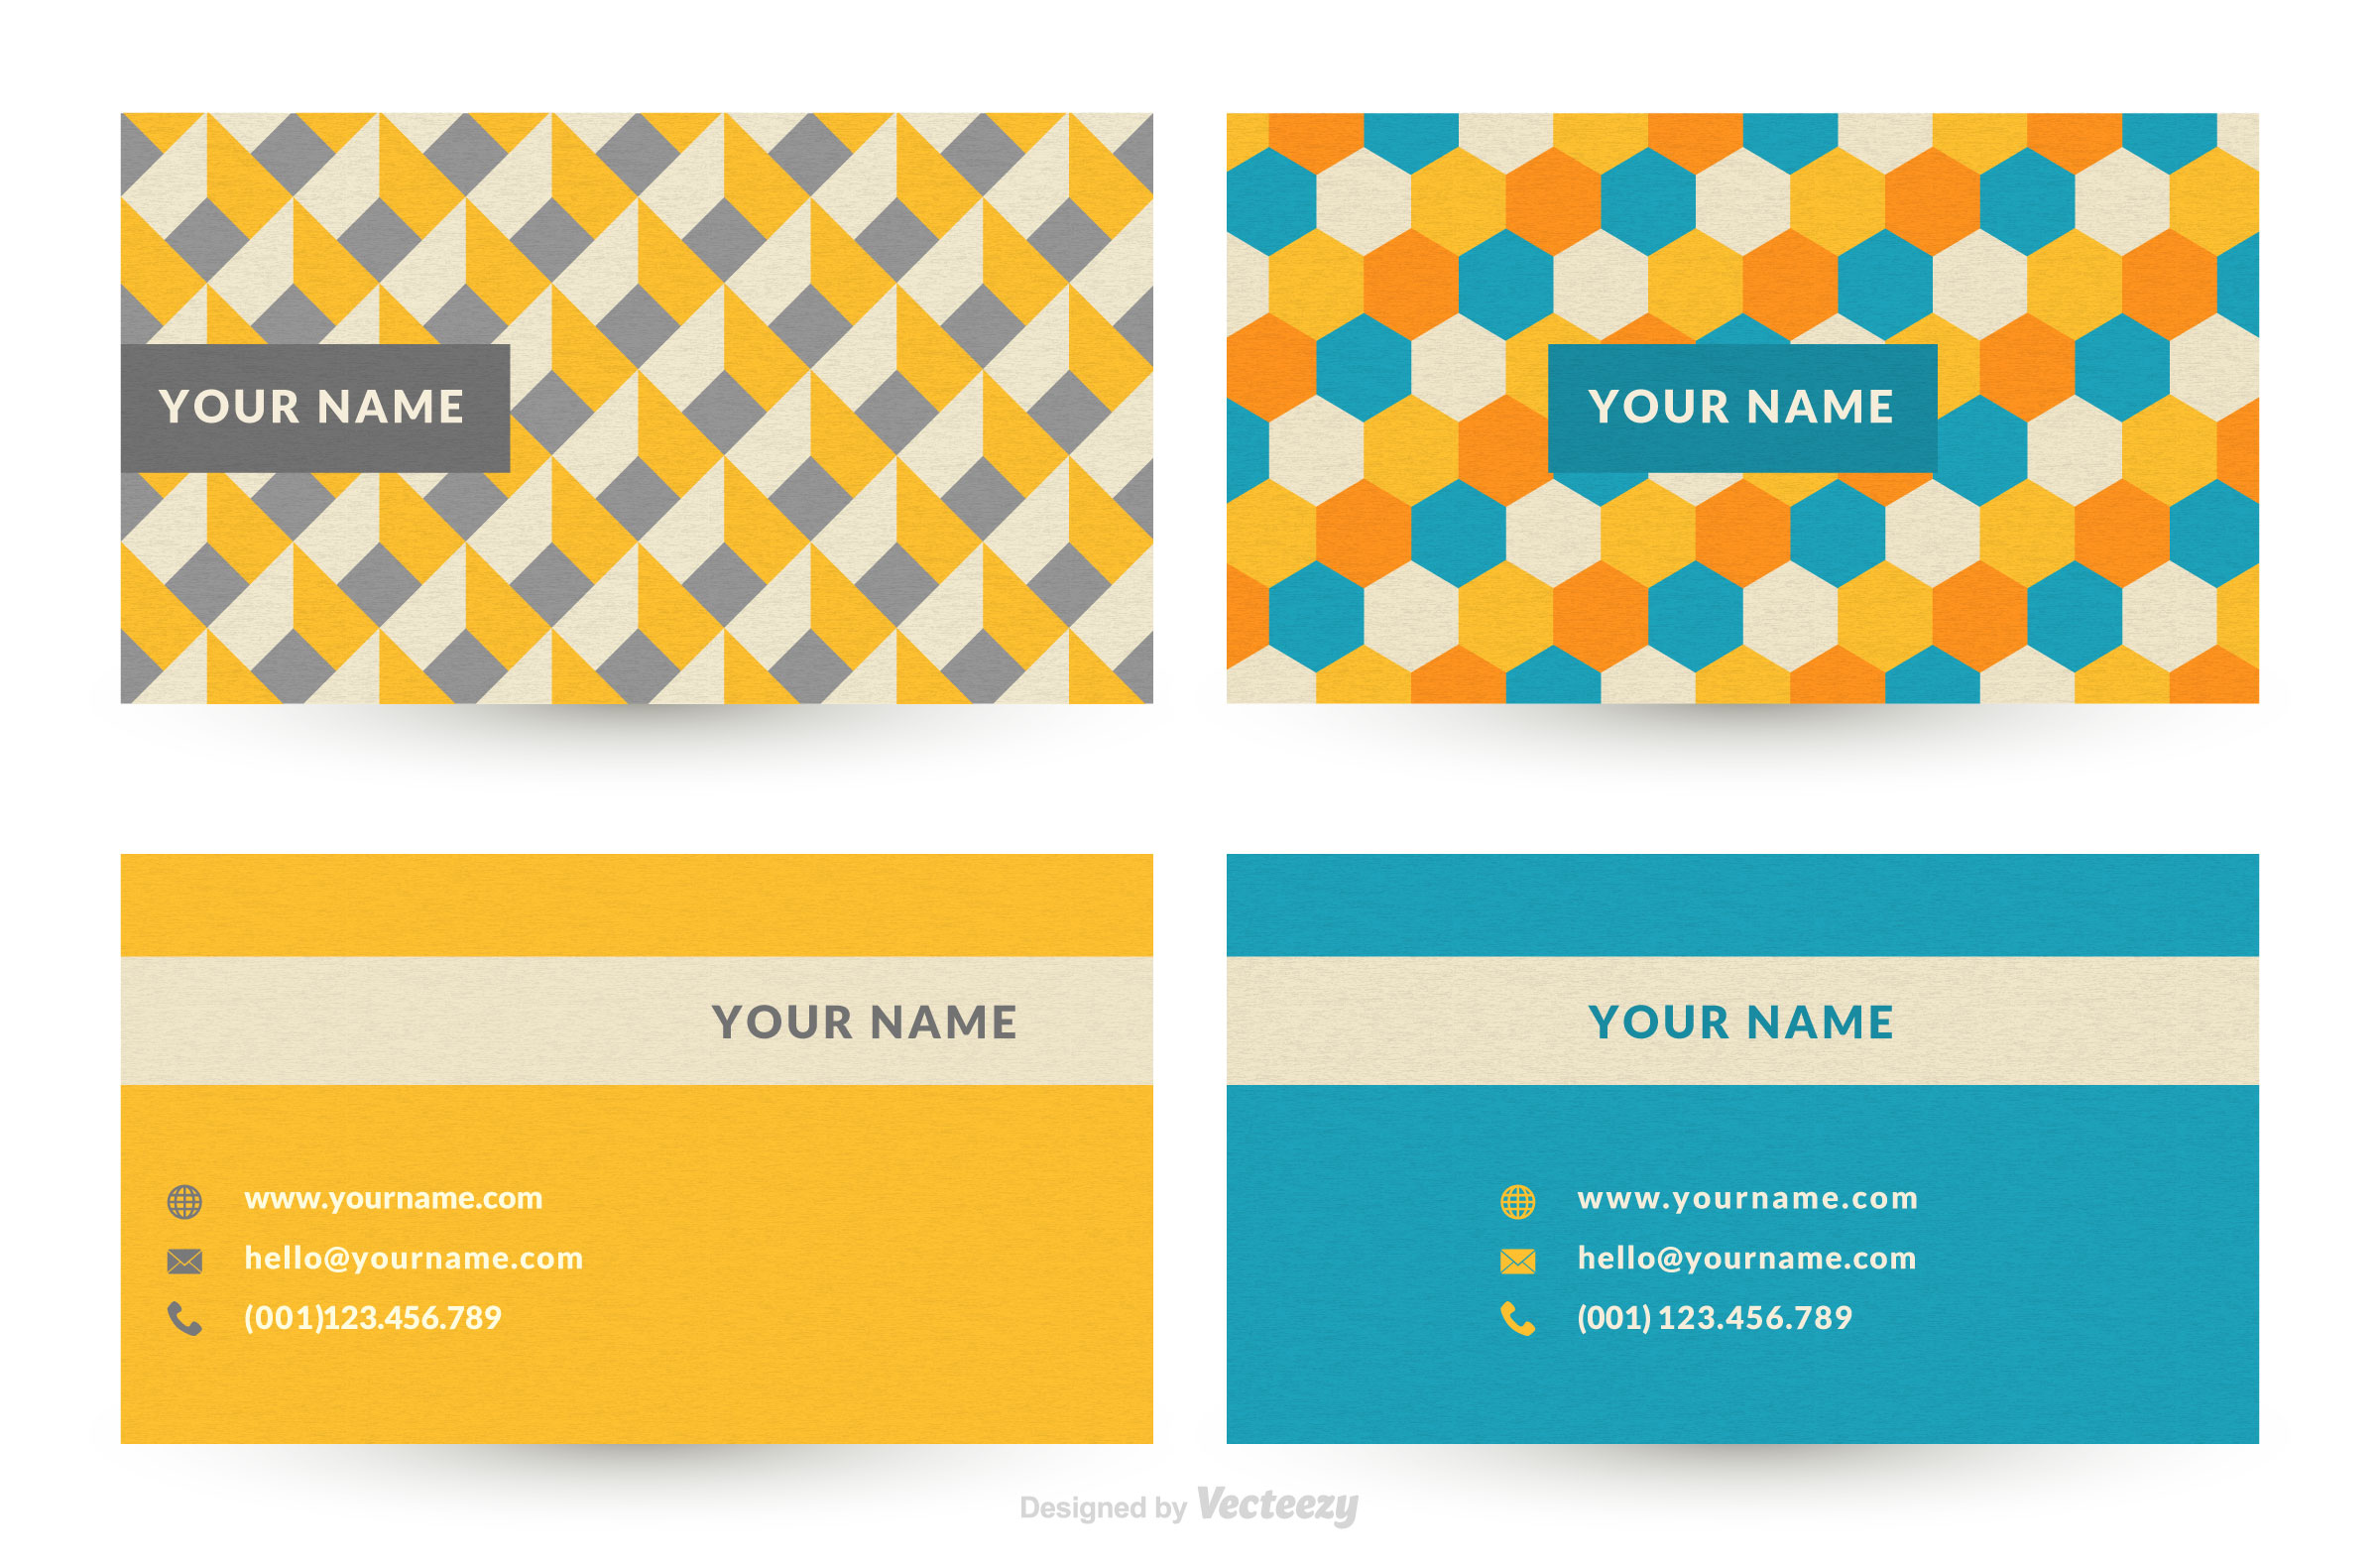 Geometric graphic design business card vector templates for Graphic design business card templates